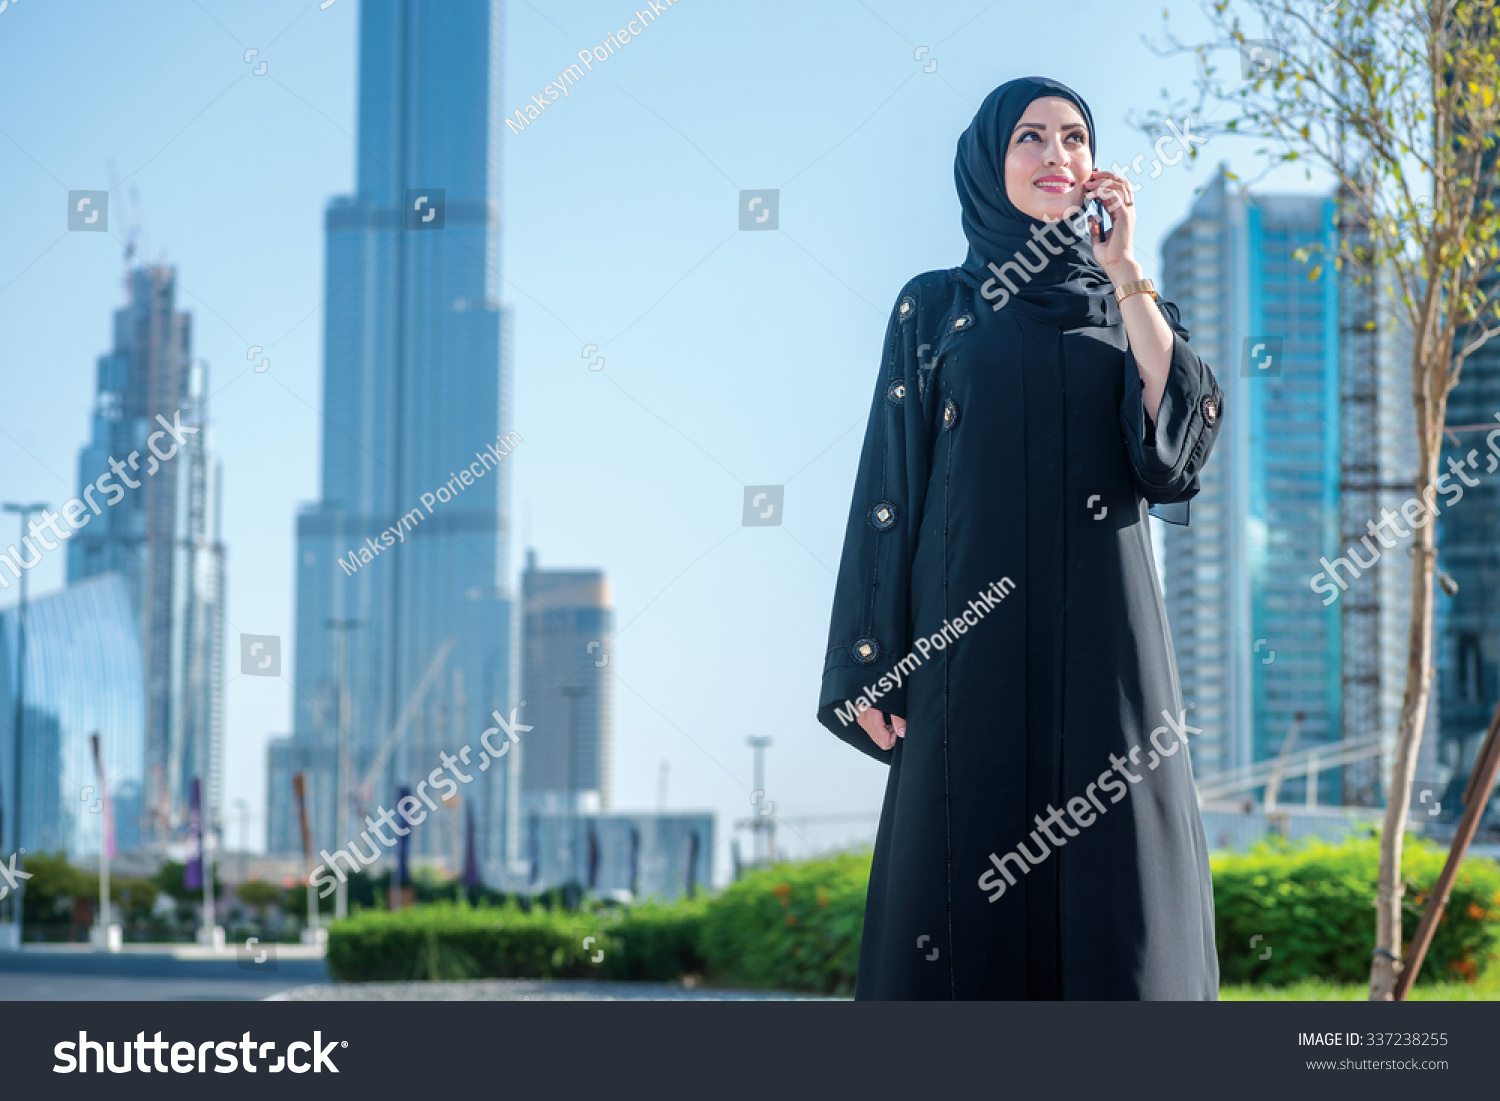 lebanese arabic conversational By mastering the basics of polite conversation in arabic, you put yourself and the person you're talking to at ease everyone should learn essential arabic conversational words and phrases.